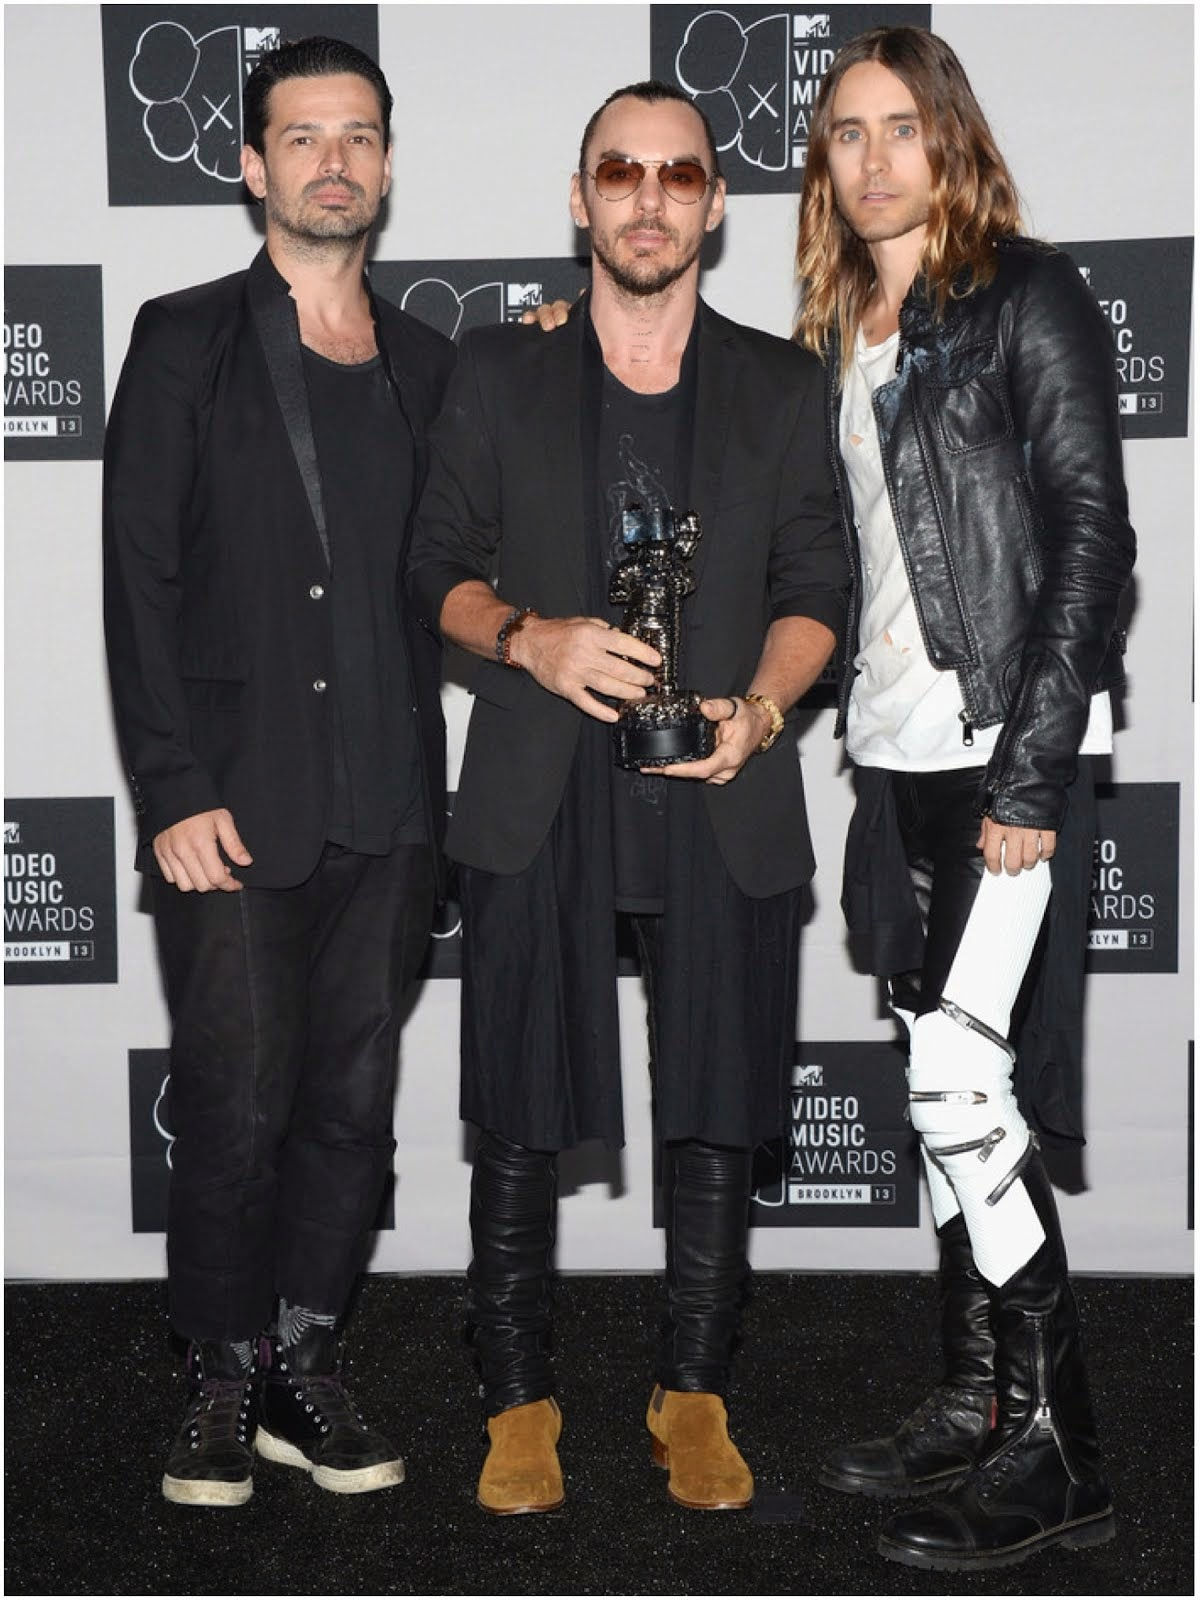 00O00 Menswear Blog: Jared Leto's Saint Laurent ribbed zipped biker trousers - 2013 MTV Video Music Awards